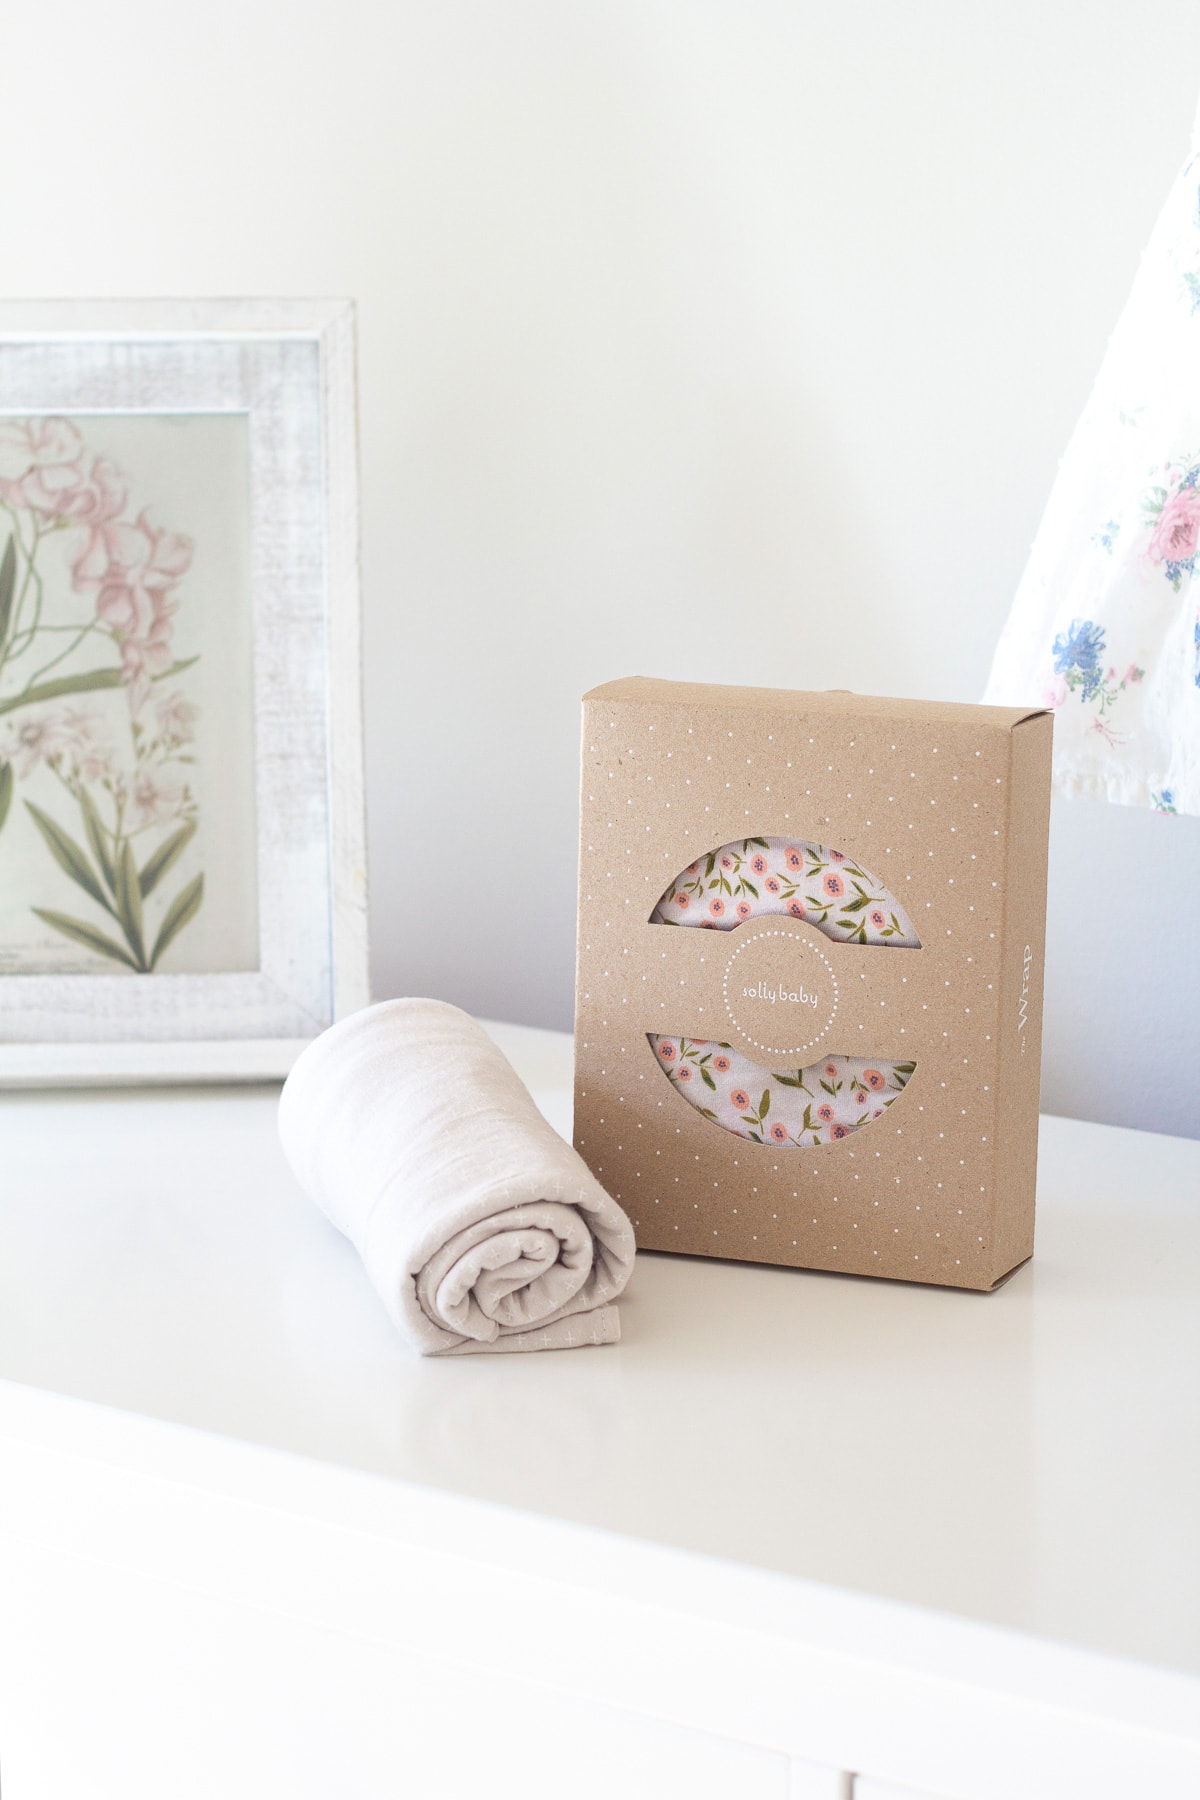 A Solly Swaddle blanket and a Solly Baby Wrap on a white dresser.